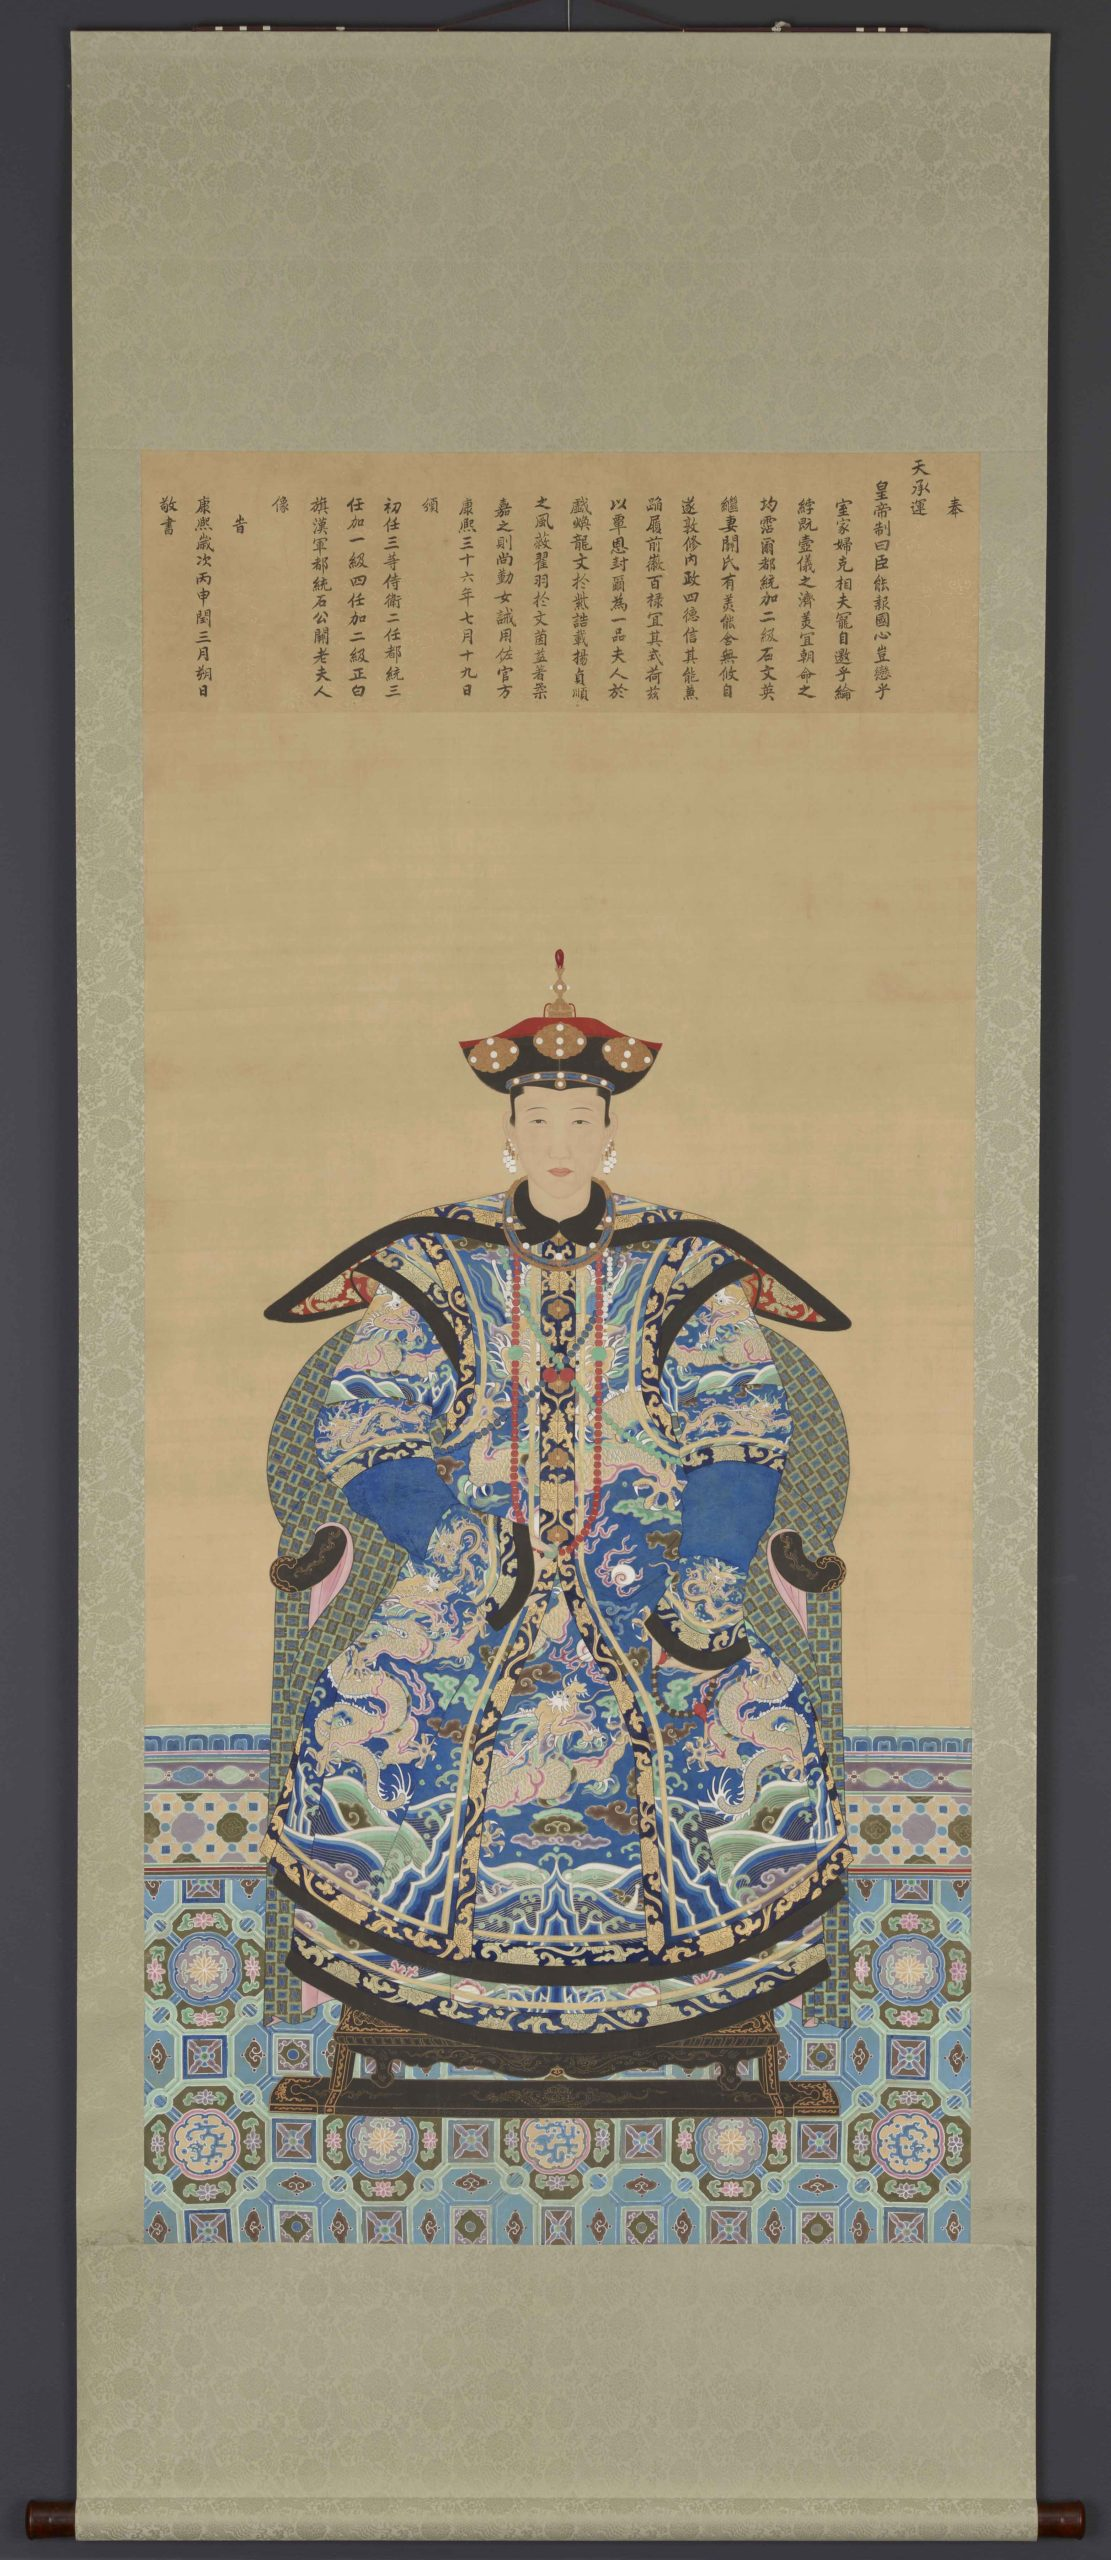 Portrait of Lady Guan, Qing dynasty, Kangxi reign or later, mid 17th-early 18th century, ink and color on silk, China 343 x 145 cm (Arthur M. Sackler Gallery, Smithsonian Institution, Washington, DC: Purchase — Smithsonian Collections Acquisition Program and partial gift of Richard G. Pritzlaff, S1991.121)